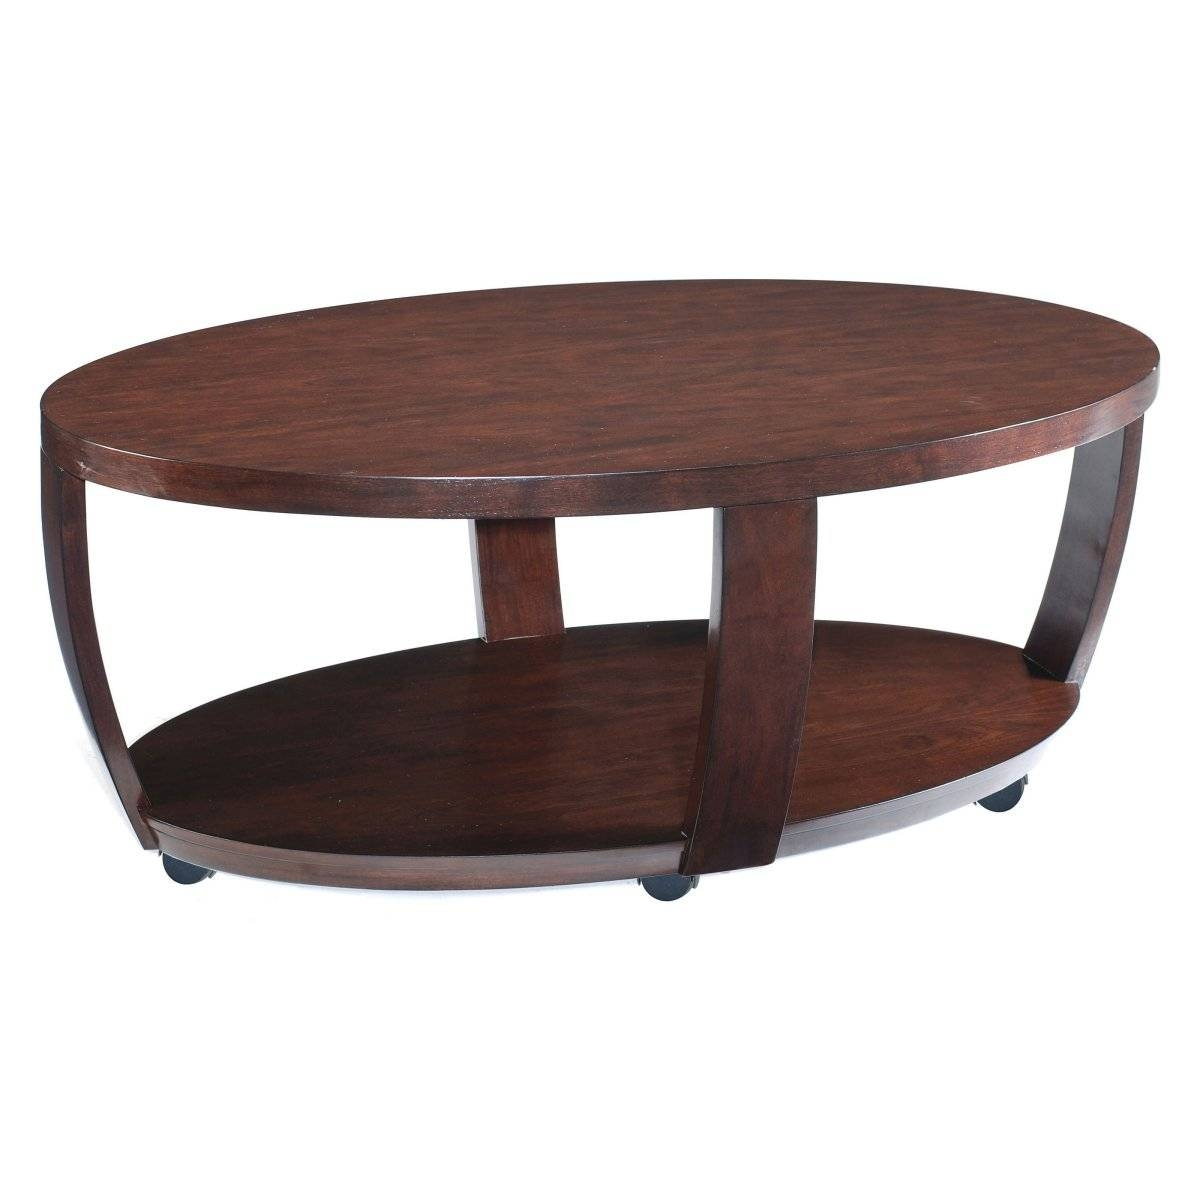 Furniture: Small Oval Coffee Table | Target Living Room Tables With Regard To Small Wood Coffee Tables (View 13 of 30)